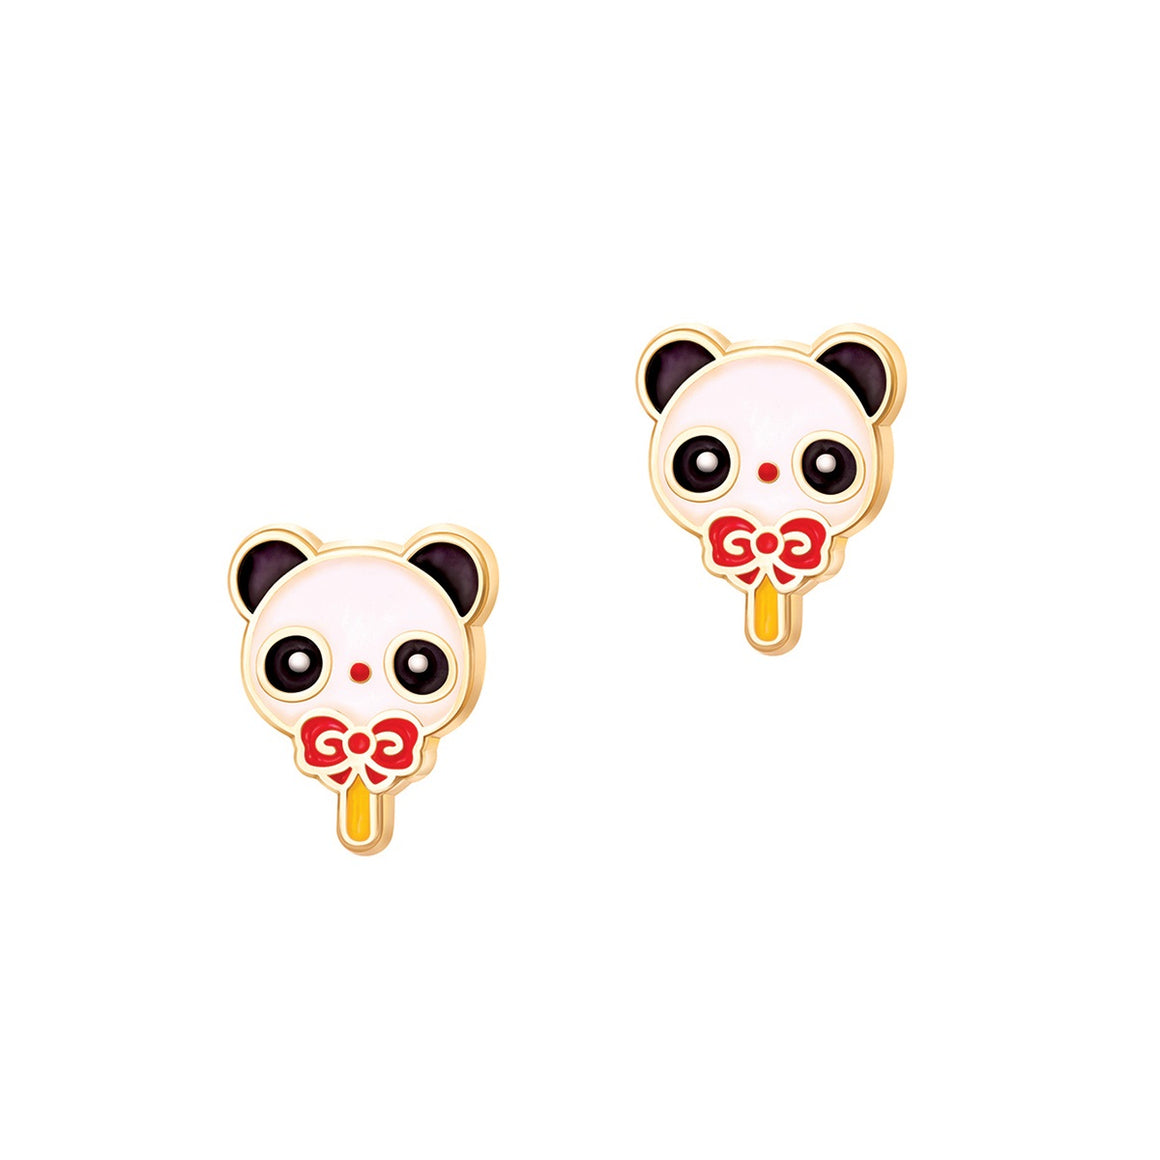 Earrings | Studs | Panda Popsicles